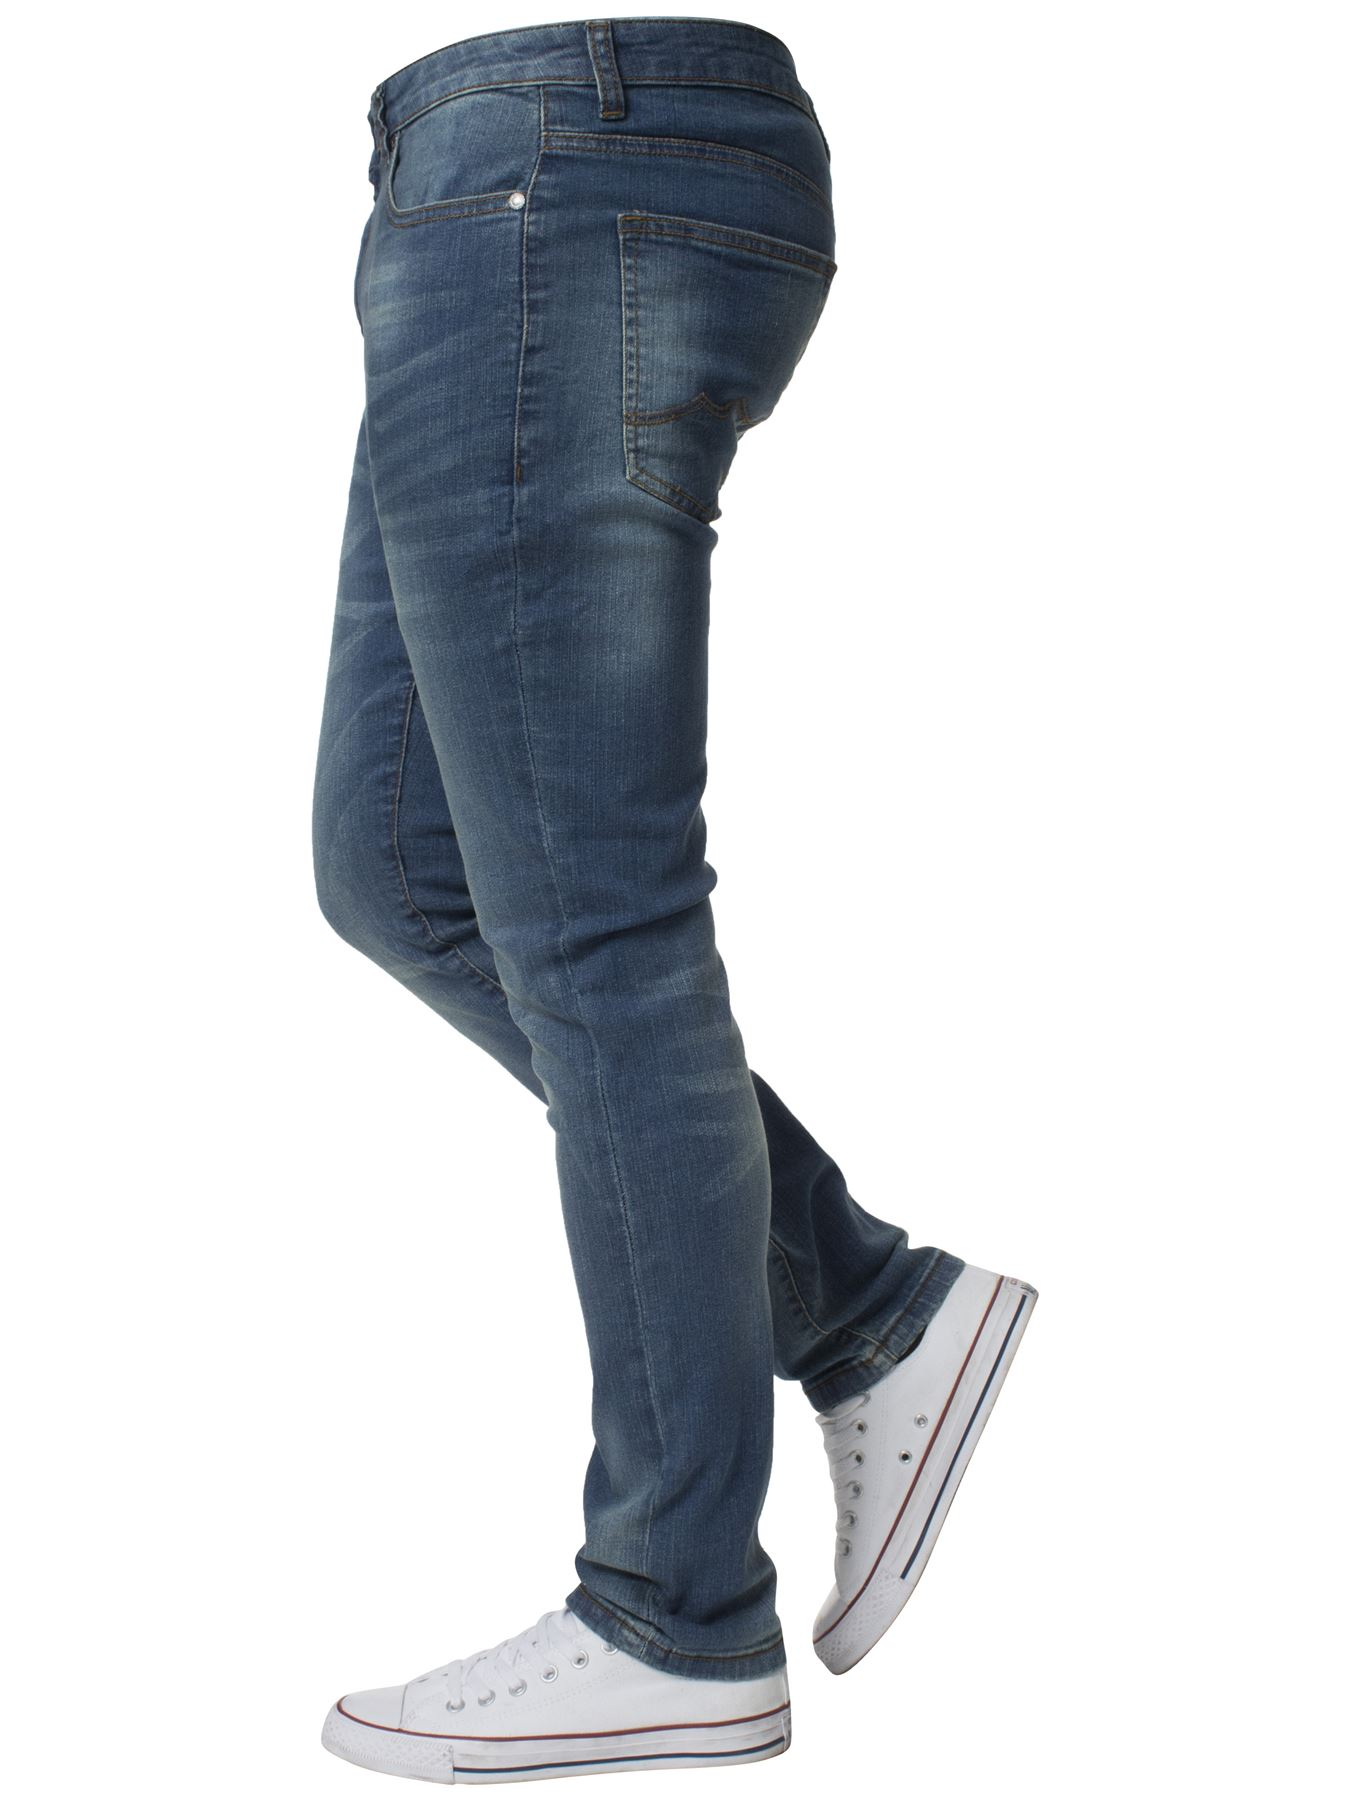 Mens-Skinny-Stretch-Jeans-Slim-Fit-Flex-Denim-Trousers-Pants-King-Sizes-by-Kruze thumbnail 25